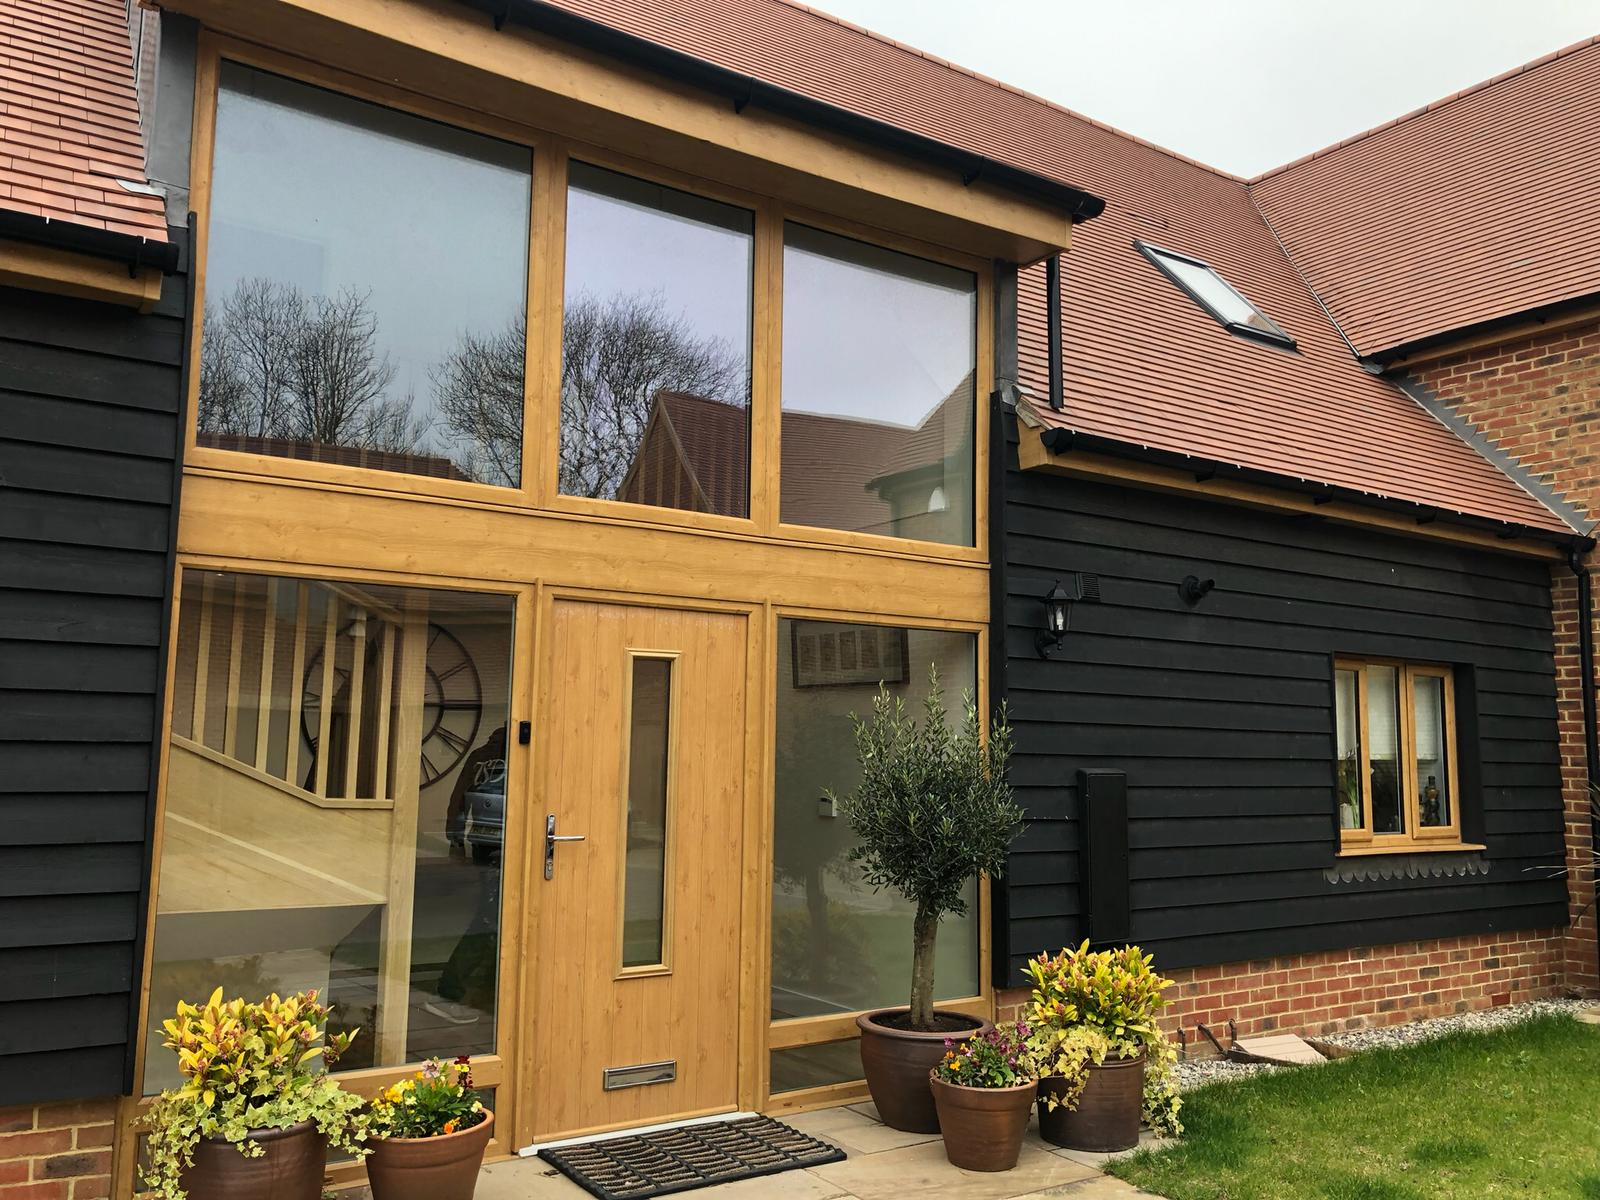 A converted barn exterior